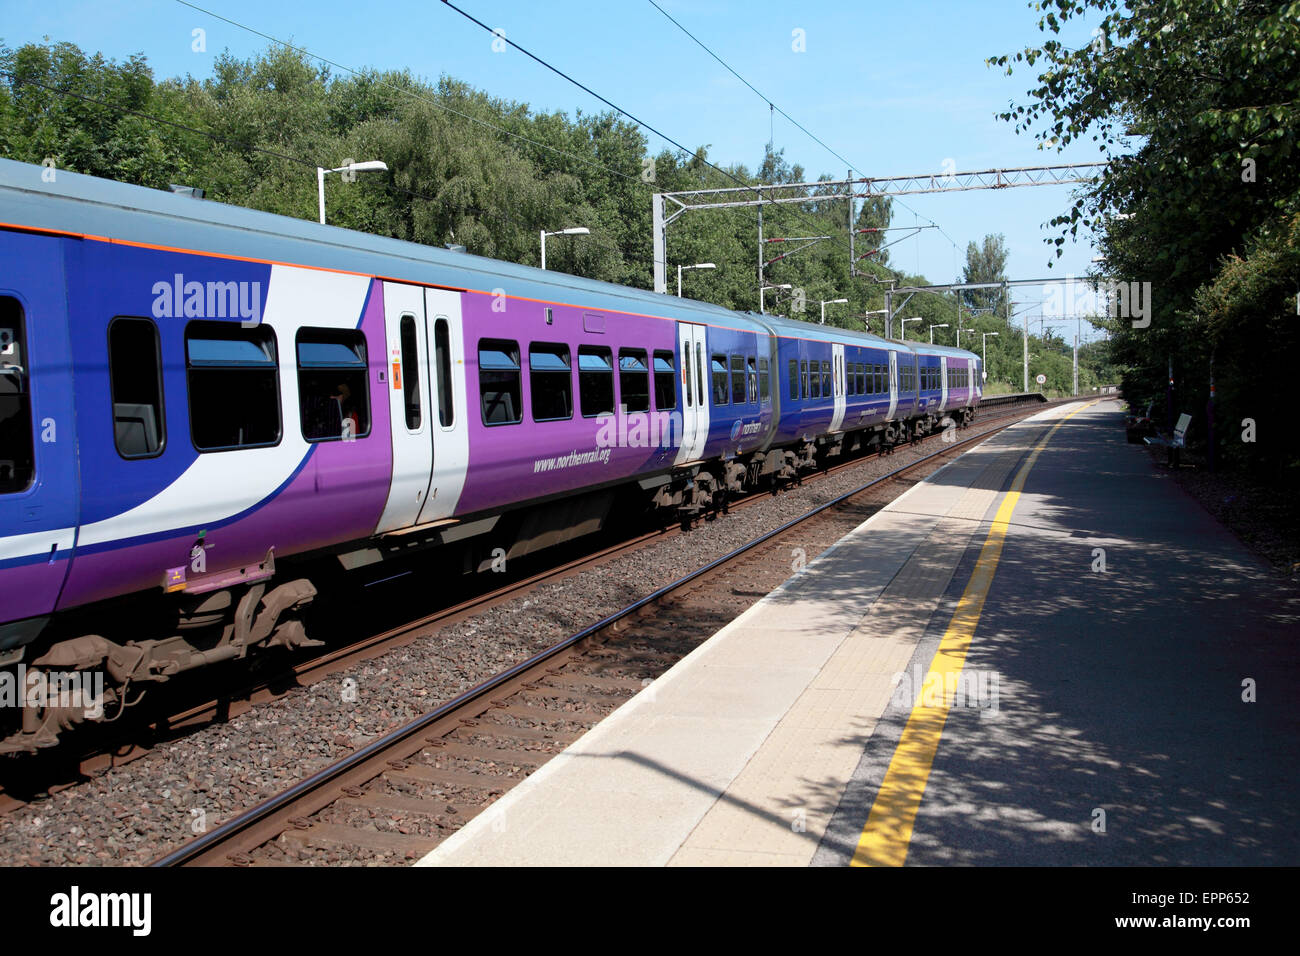 A Northern Rail train at Kidsgrove near Stoke on Trent, Staffordshire - Stock Image